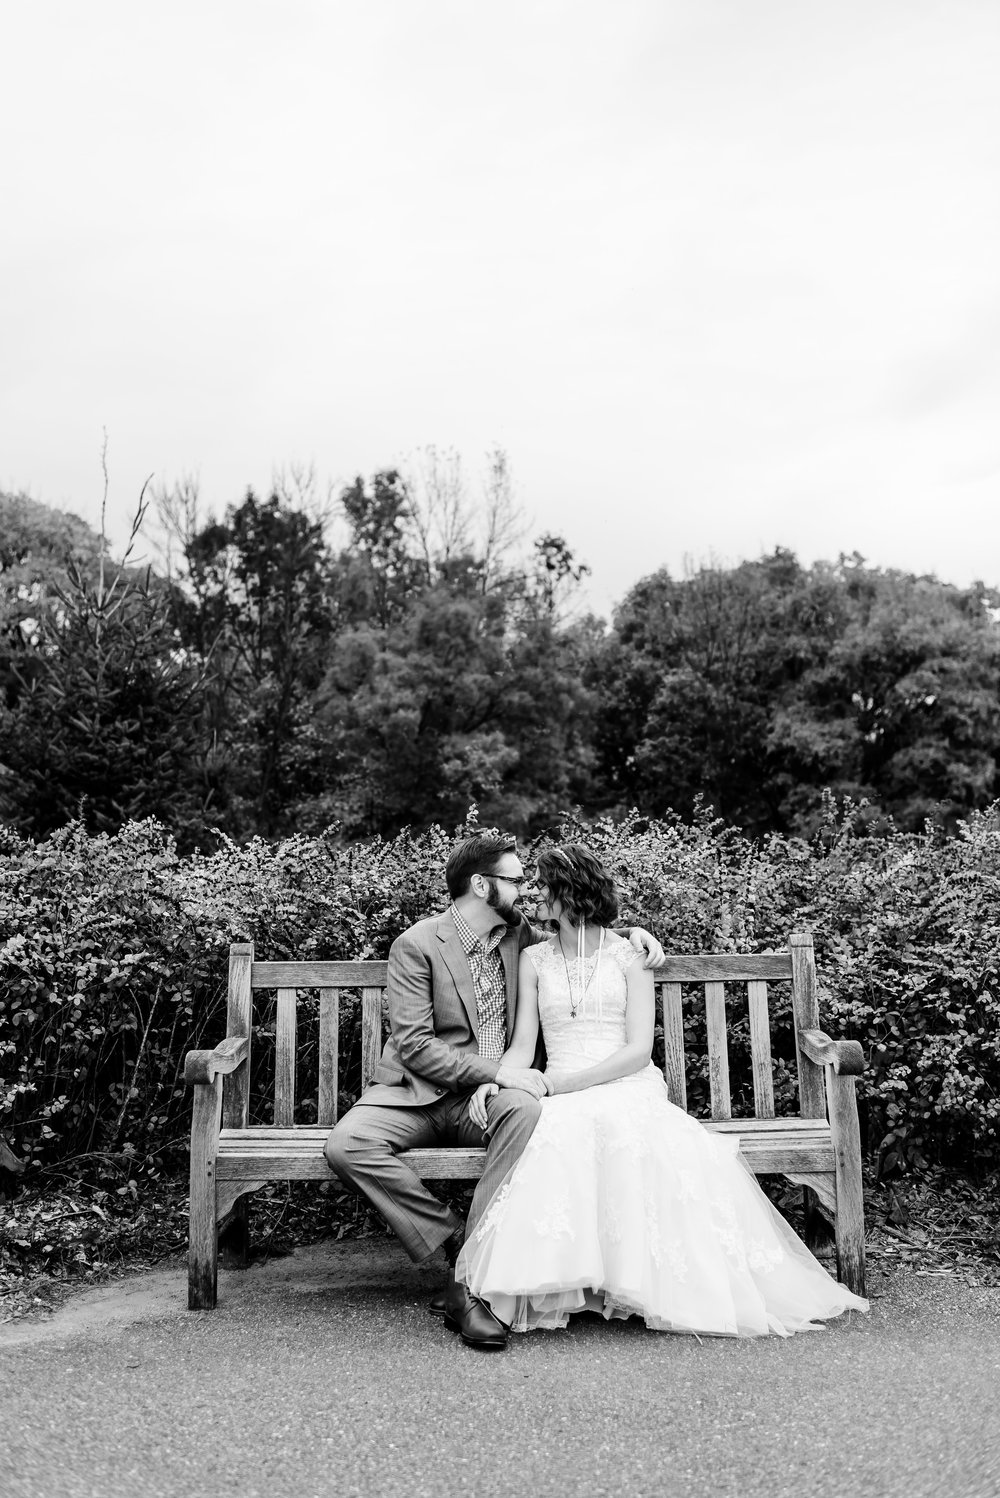 Romantic Bride and Groom Portrait on Bench at Minnesota Landscape Arboretum - Chaska MN Wedding Photographer